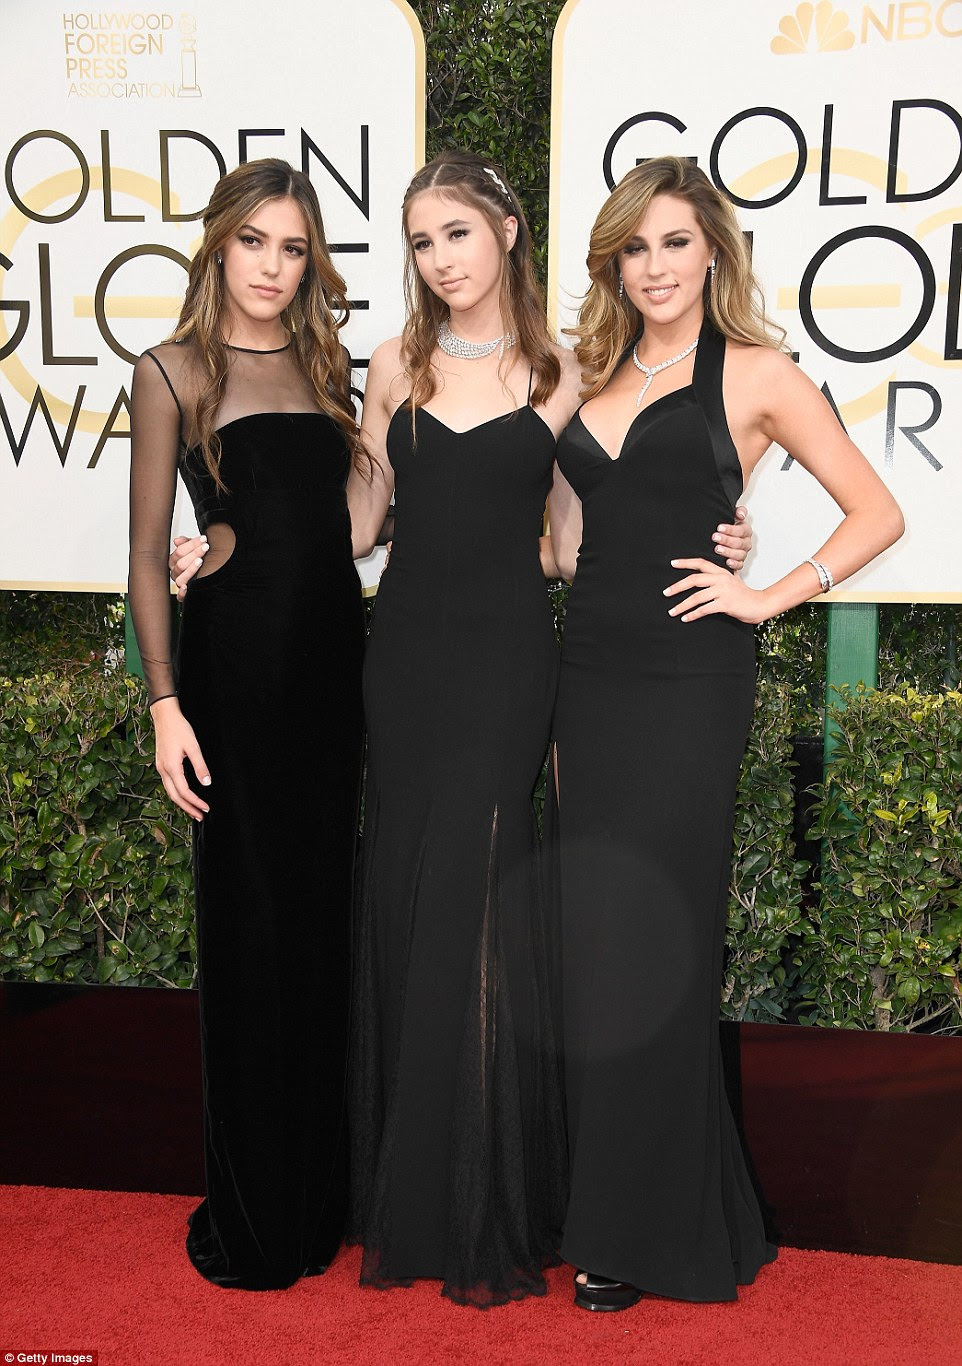 Sly's leading ladies! Miss Golden Globes Sistine, Scarlet and Sophia Stallone keep it classic in black as they lead red carpet arrivals for the Golden Globe Awards